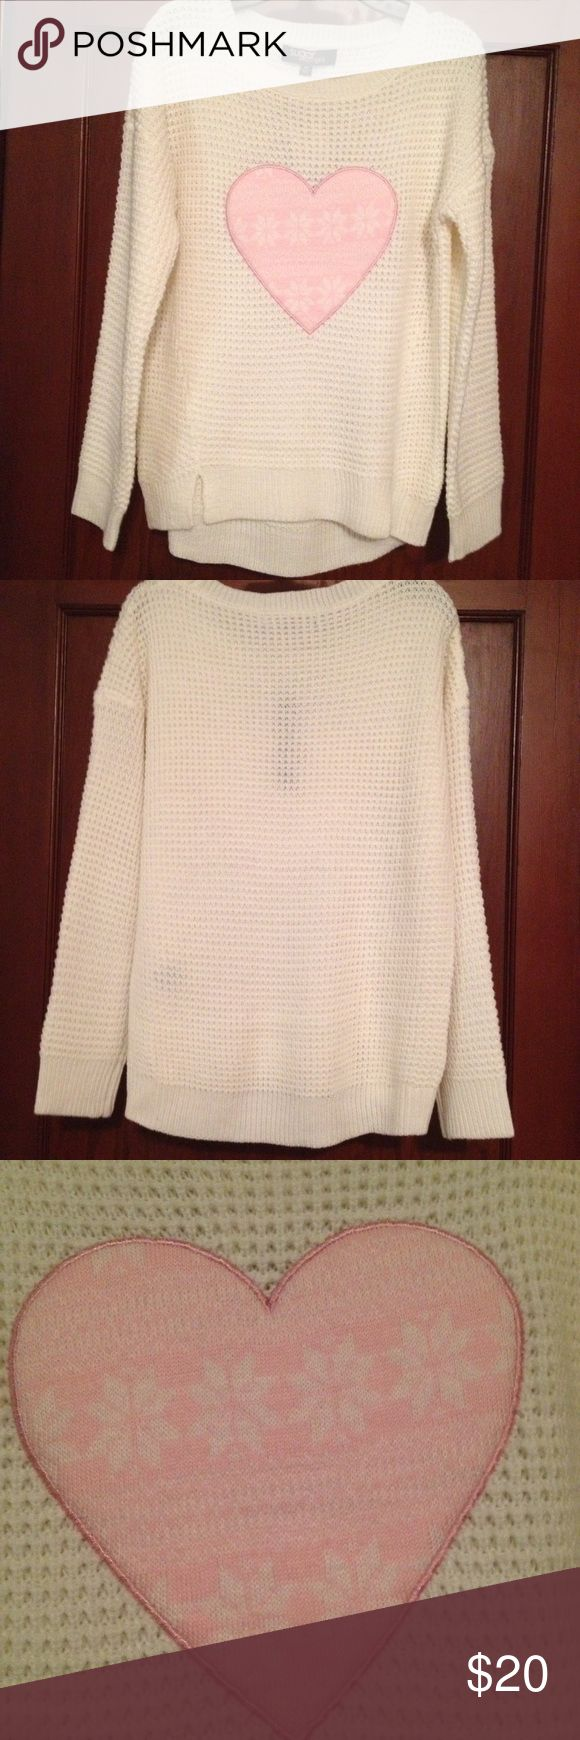 """Girls size XL """"Sugar Rush girls"""" sweater. Girls sweater size XL new with tags has pink heart on front and sweater longer in back. sugar rush girls Shirts & Tops Sweaters"""